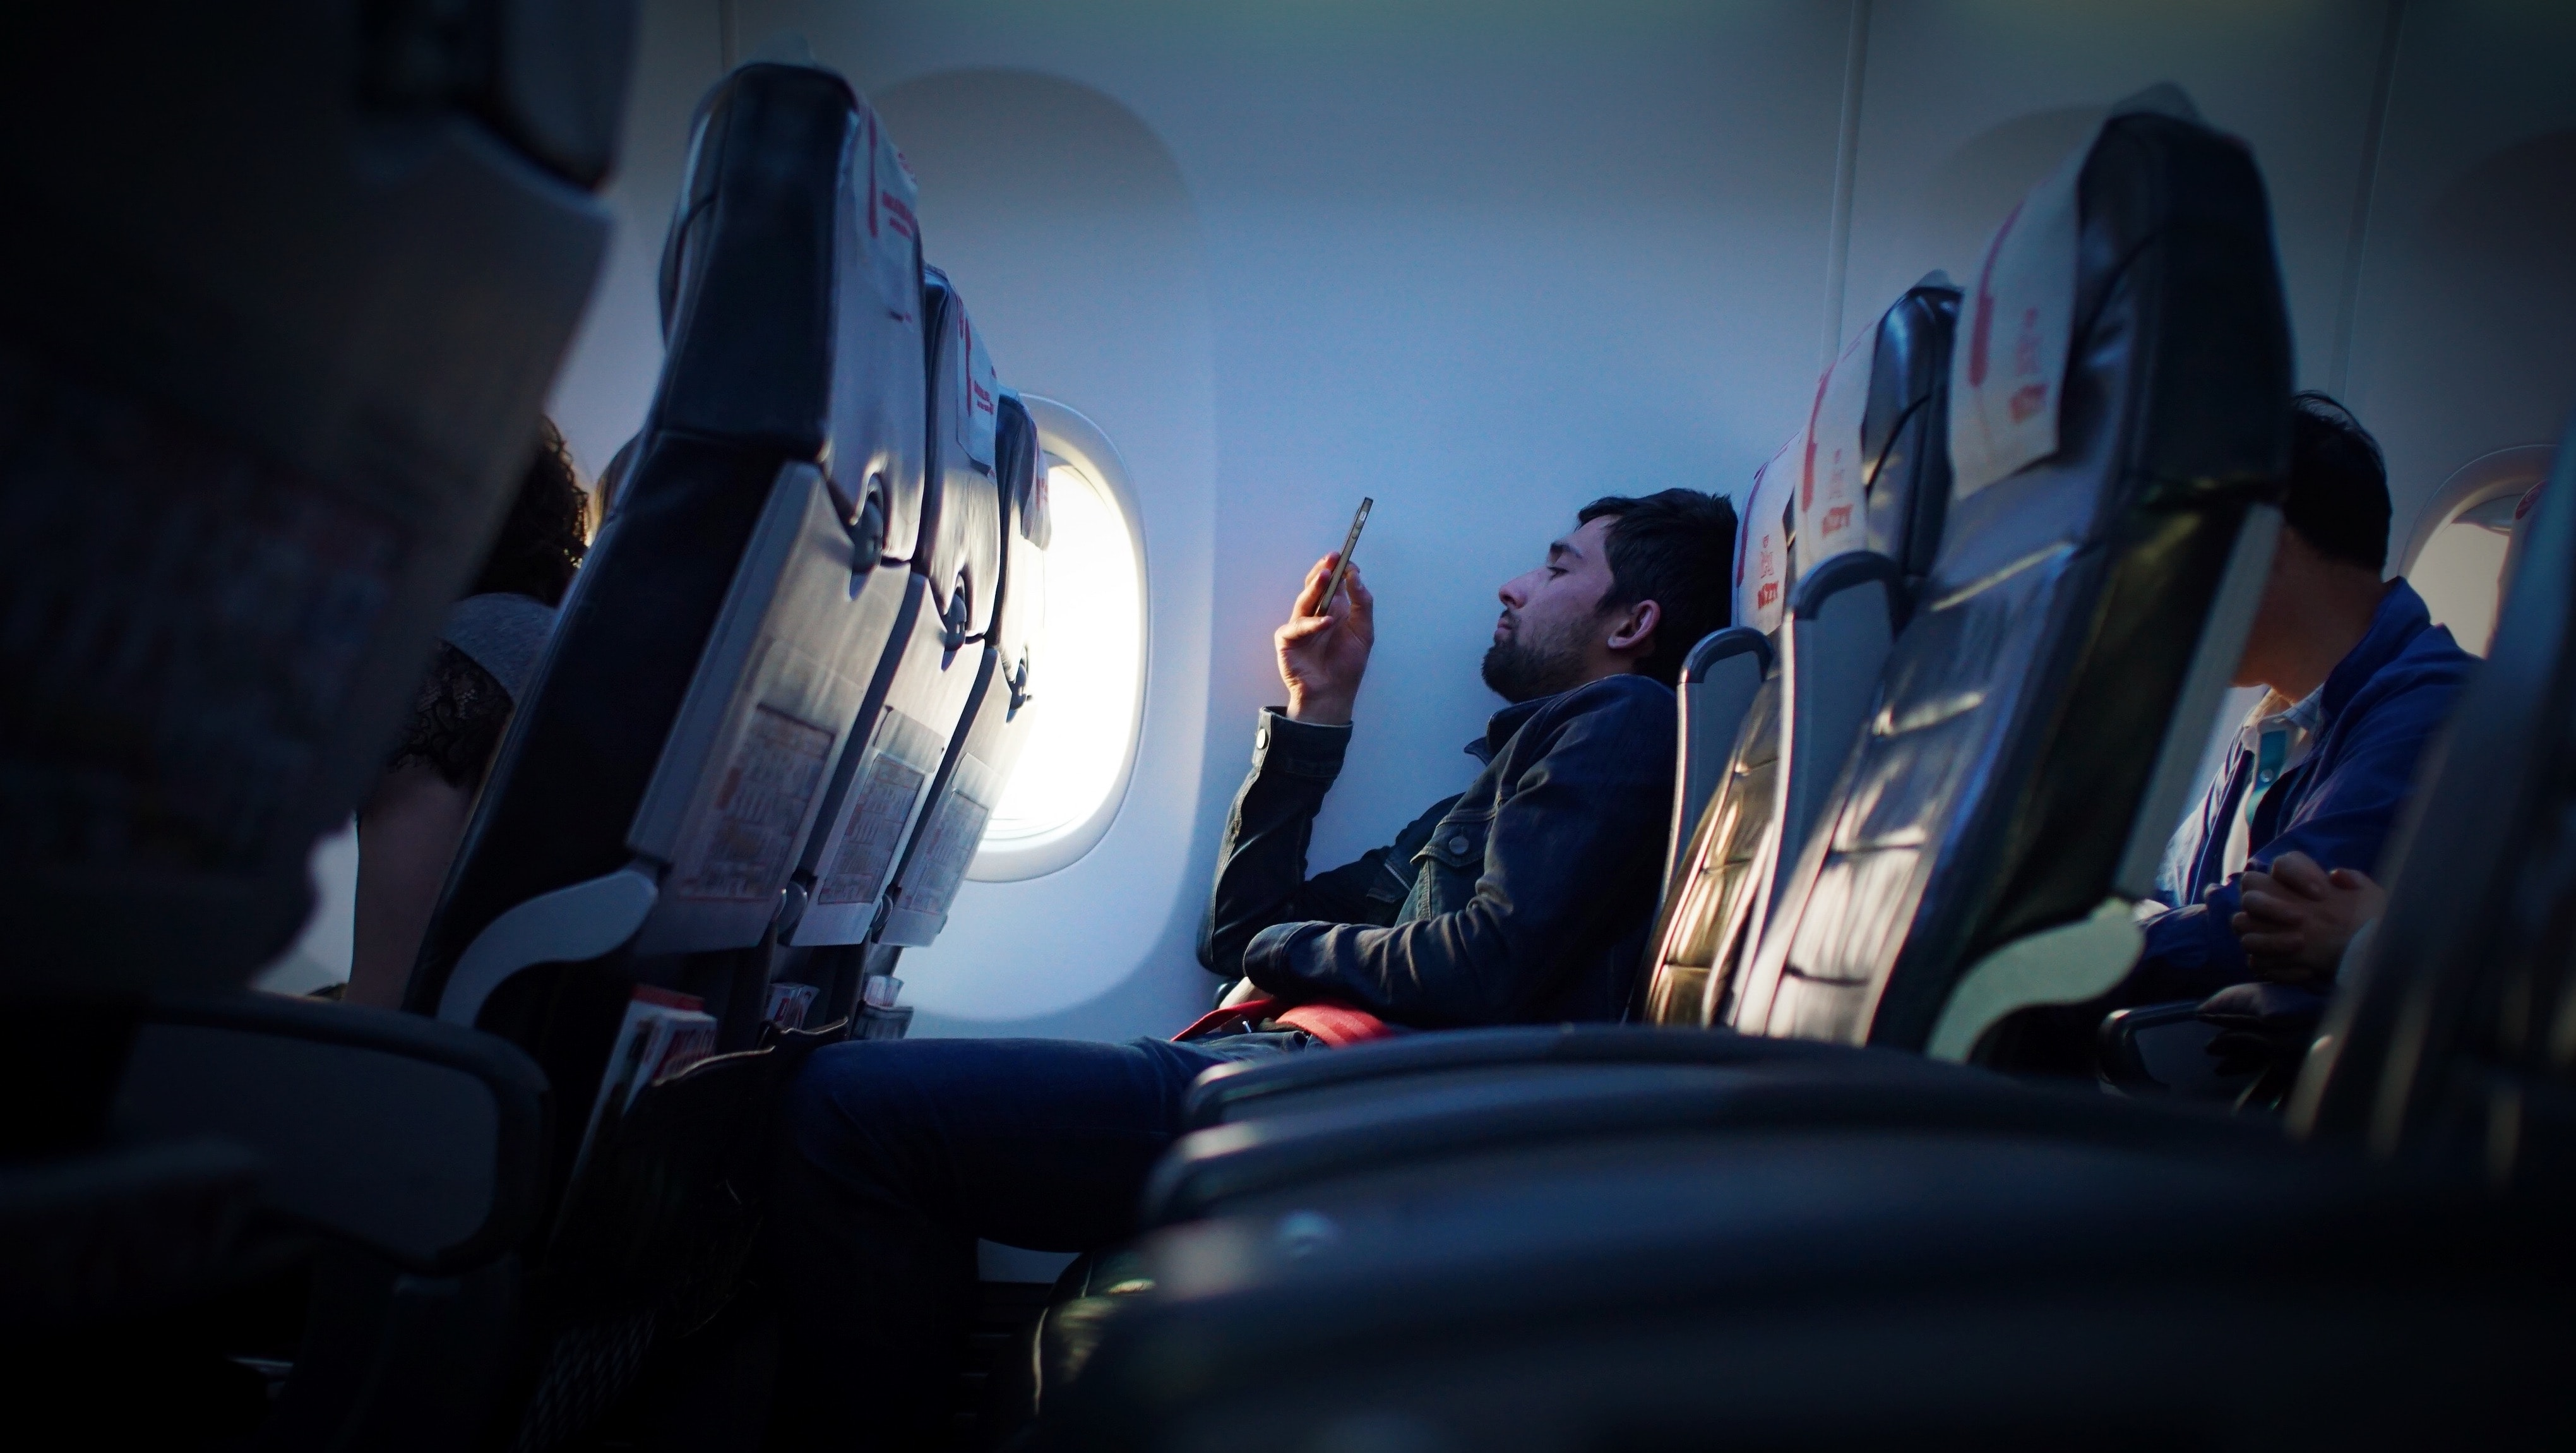 A Red-Eye Flight Leads to a Gut Wrenching Encounter